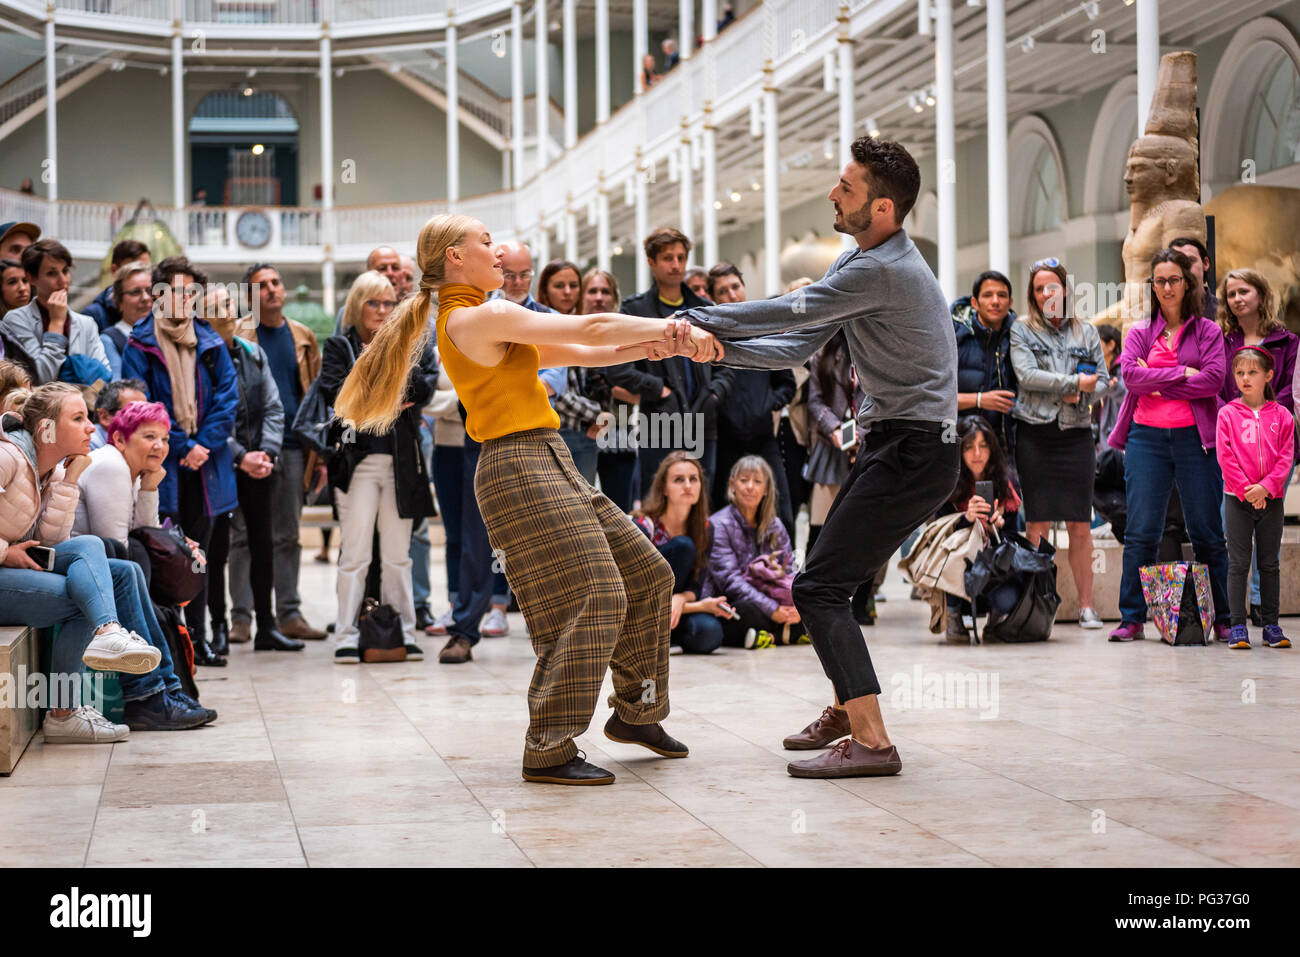 """Edinburgh, UK. 23 August 2018. Janis Claxton Dance perform """"POP-UP Duets (fragments of love)"""" at the National Museum of Scotland, Edinburgh as part of the Edinburgh Festival. Credit: Andy Catlin/Alamy Live News - Stock Image"""